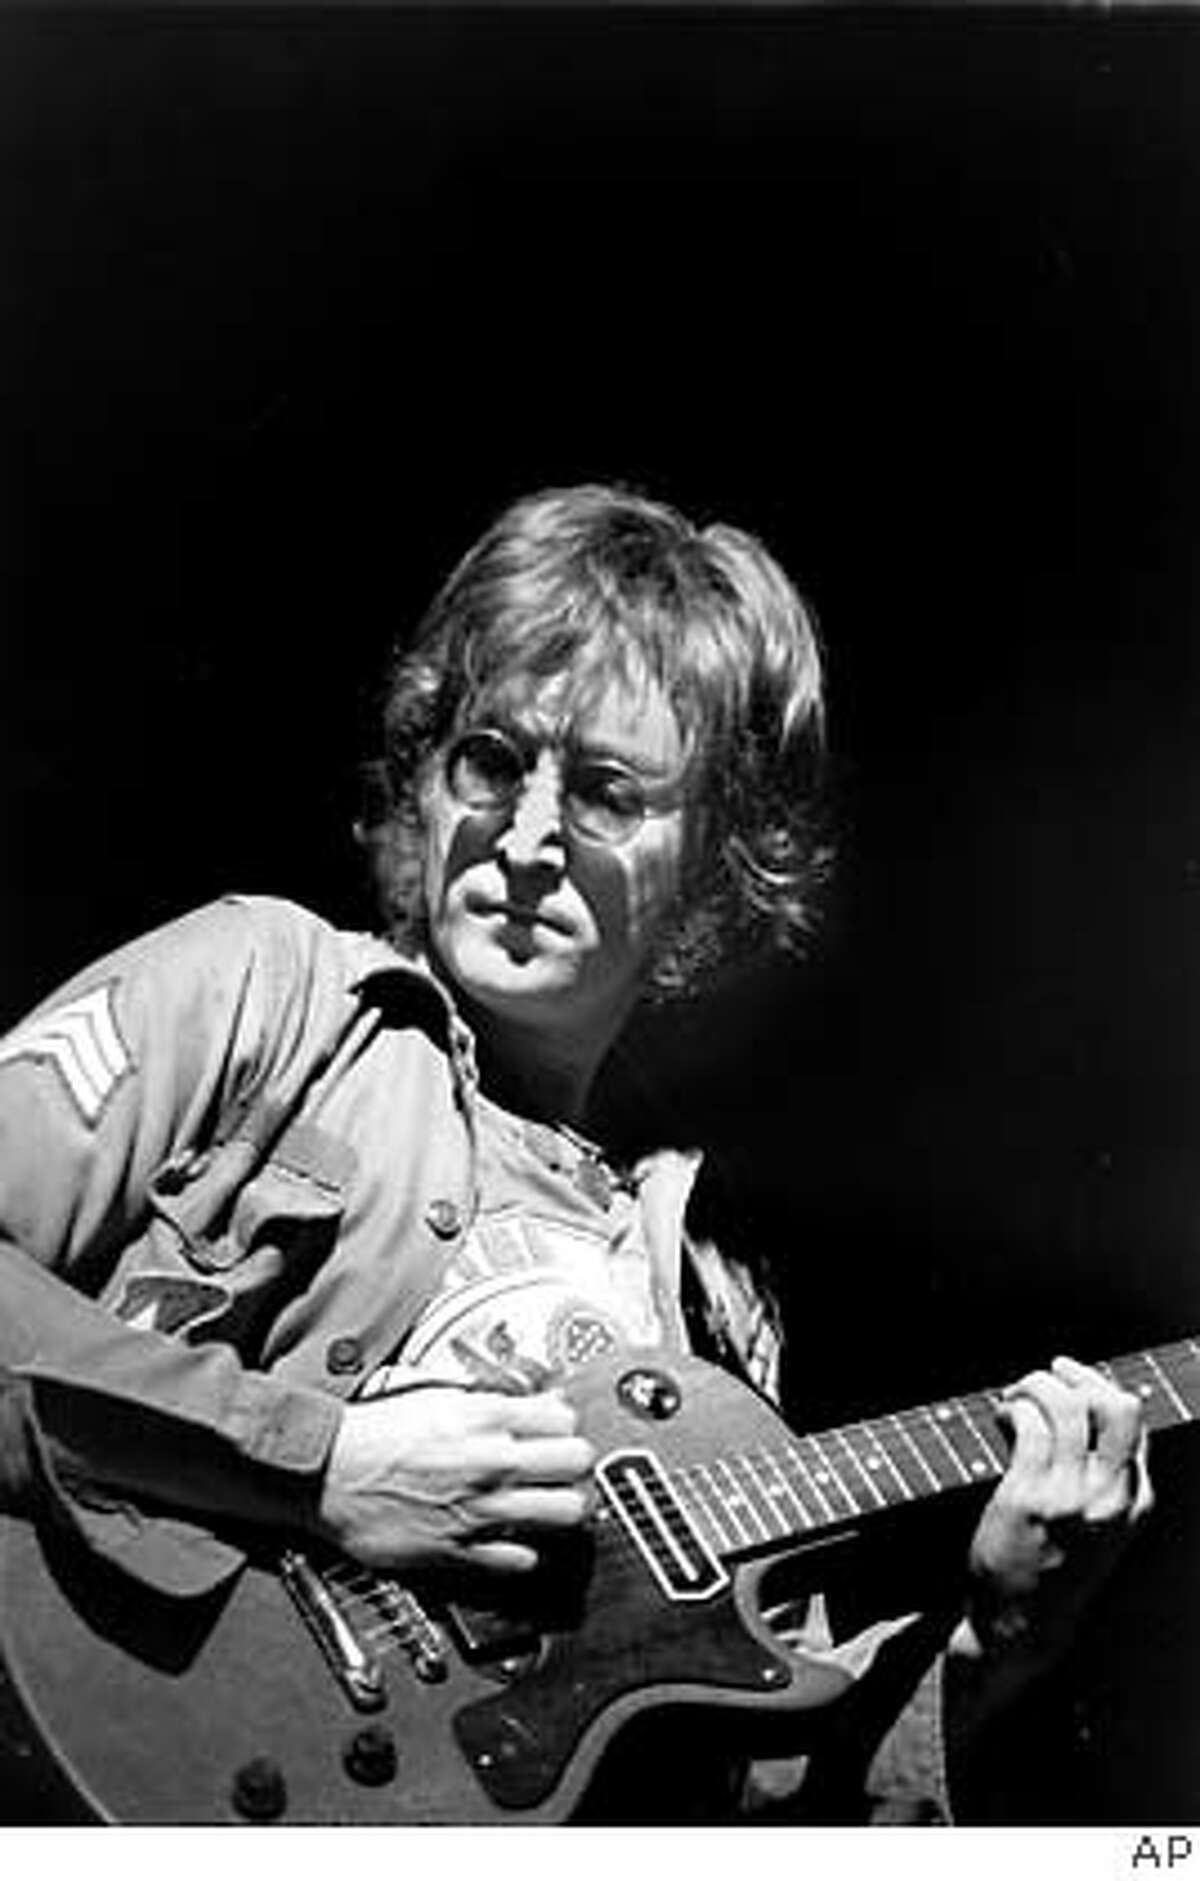 ** ADVANCE FOR SUNDAY, NOV. 20--FILE** Former Beatle John Lennon performs at New York's Madison Square Garden in this Aug. 30, 1972, file photo. It was Dec. 8, 1980 when Lennon was gunned down outside of his New York apartment. (AP Photo/File) HFR 11-20-05. ADVANCE FOR SUNDAY, NOV. 20. AUG. 30, 1972 FILE PHOTO